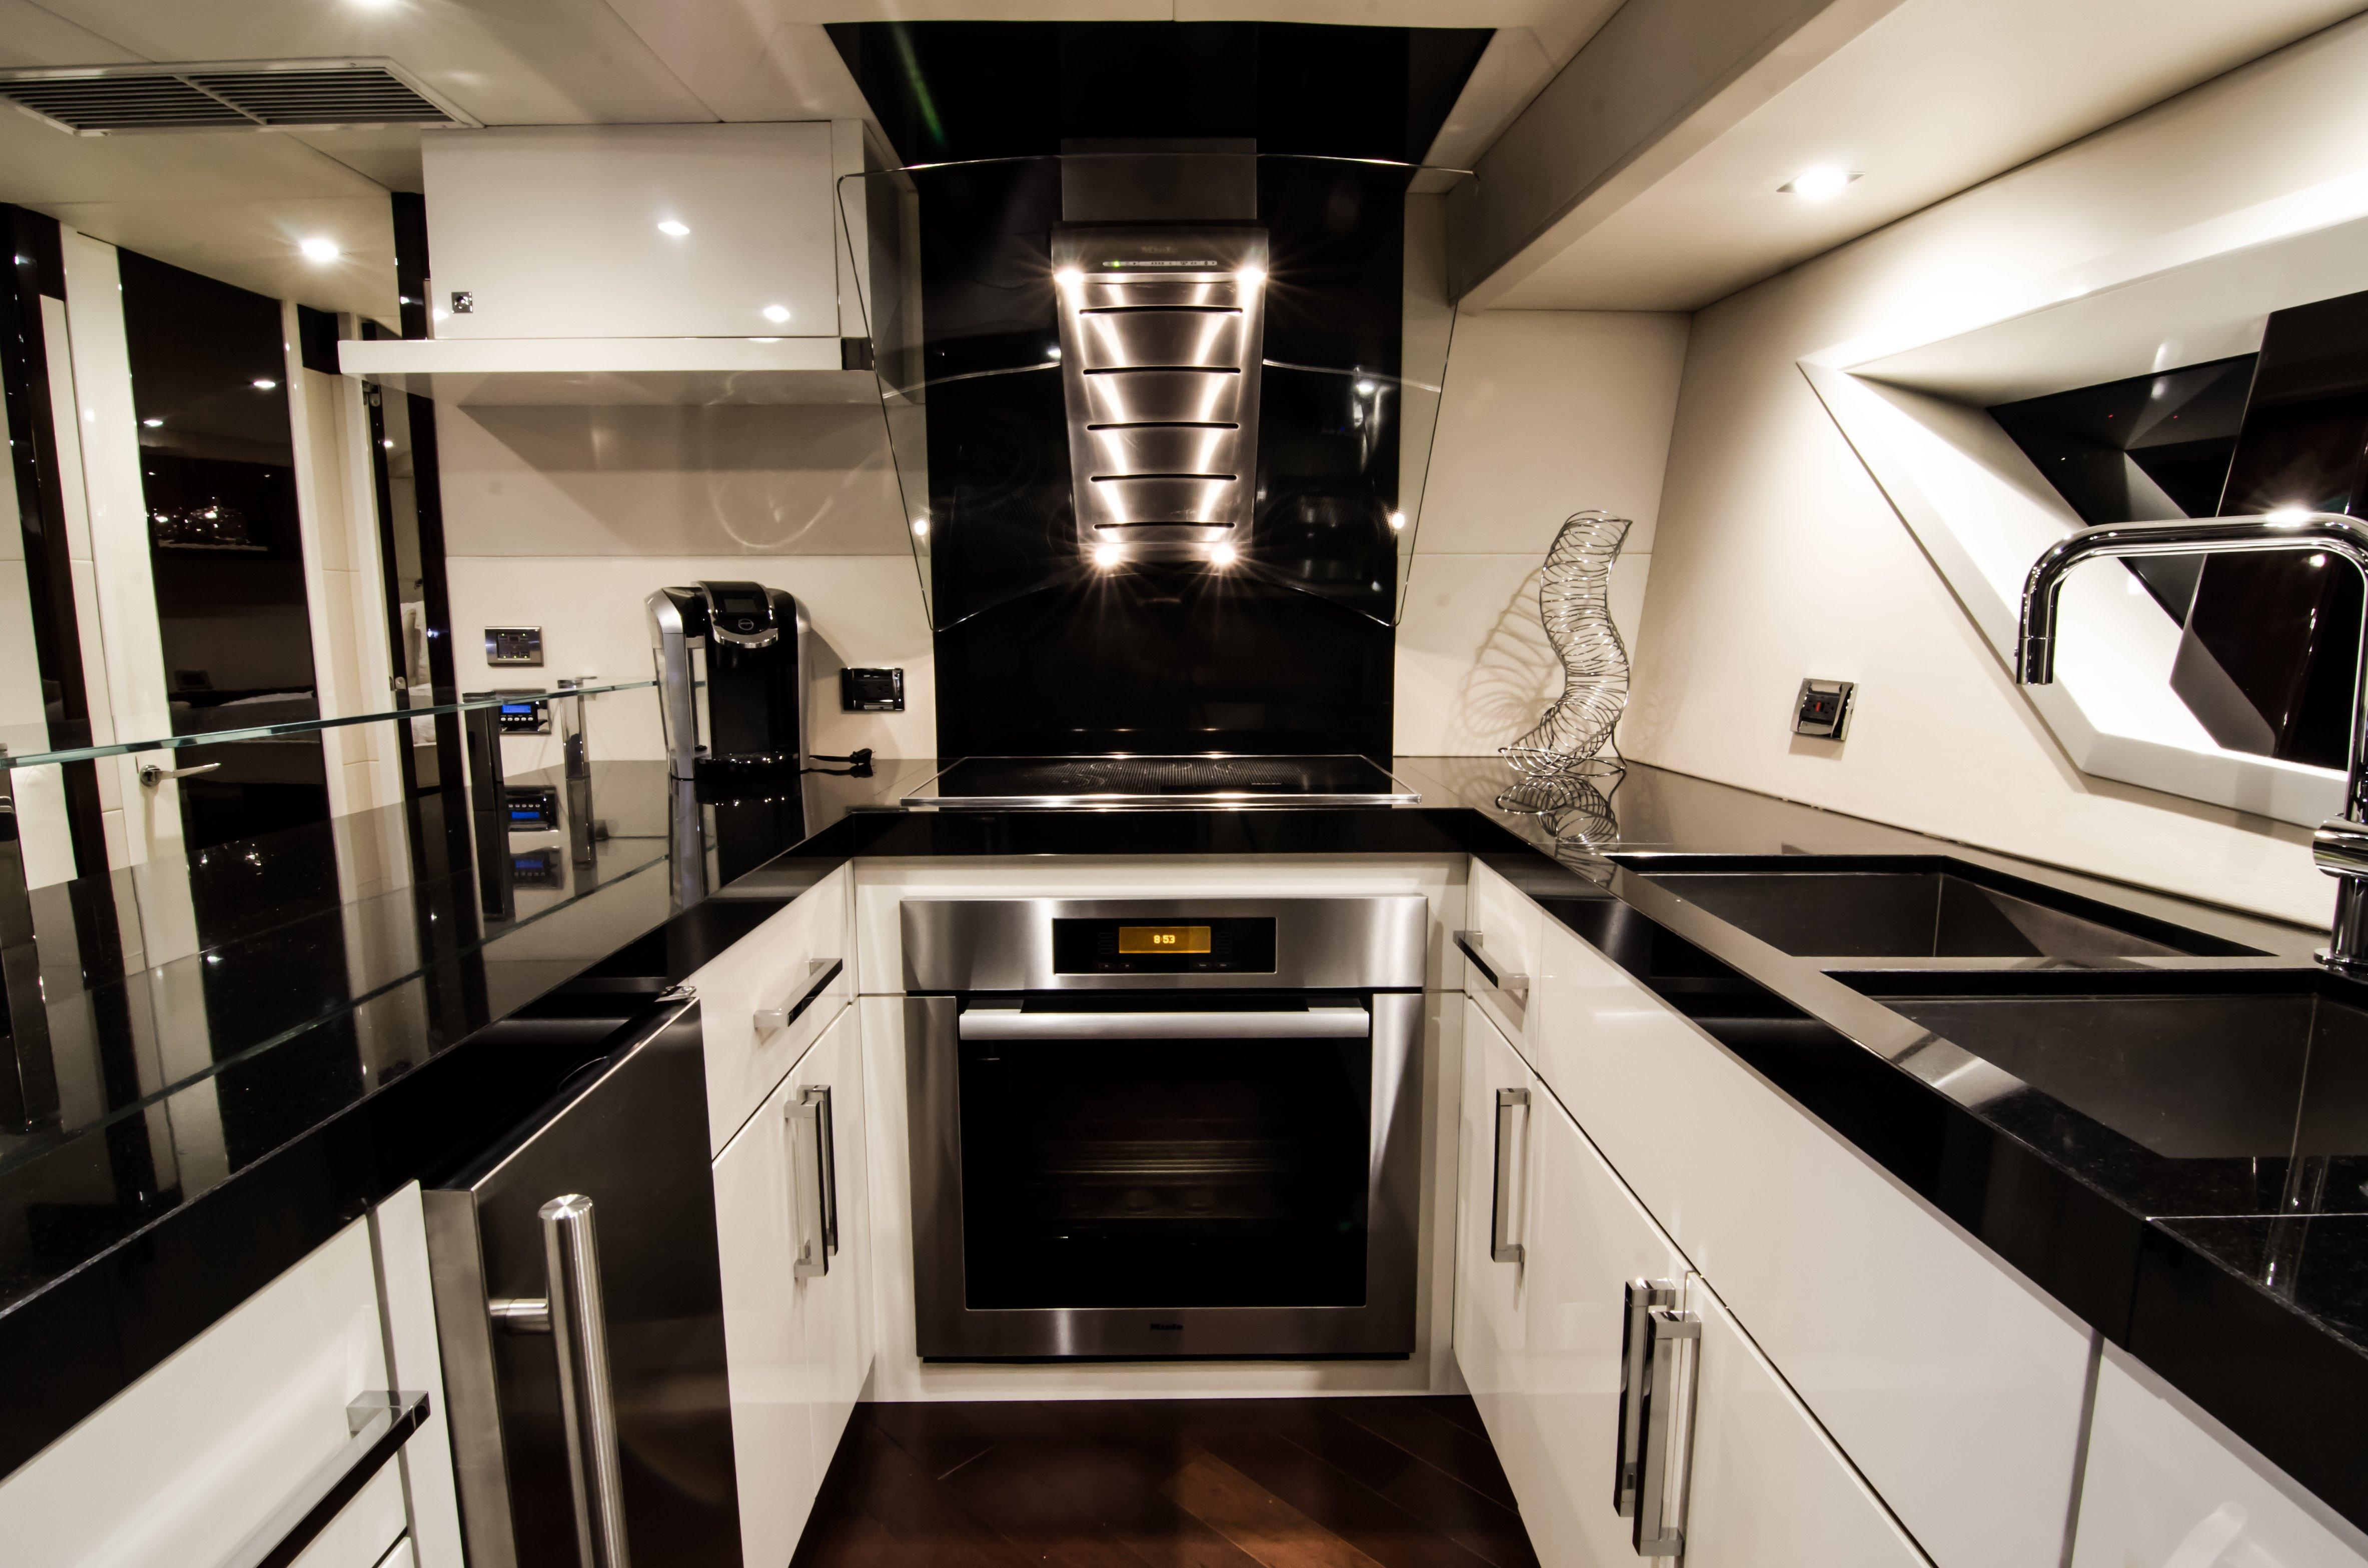 Galley- Stove Top and Oven